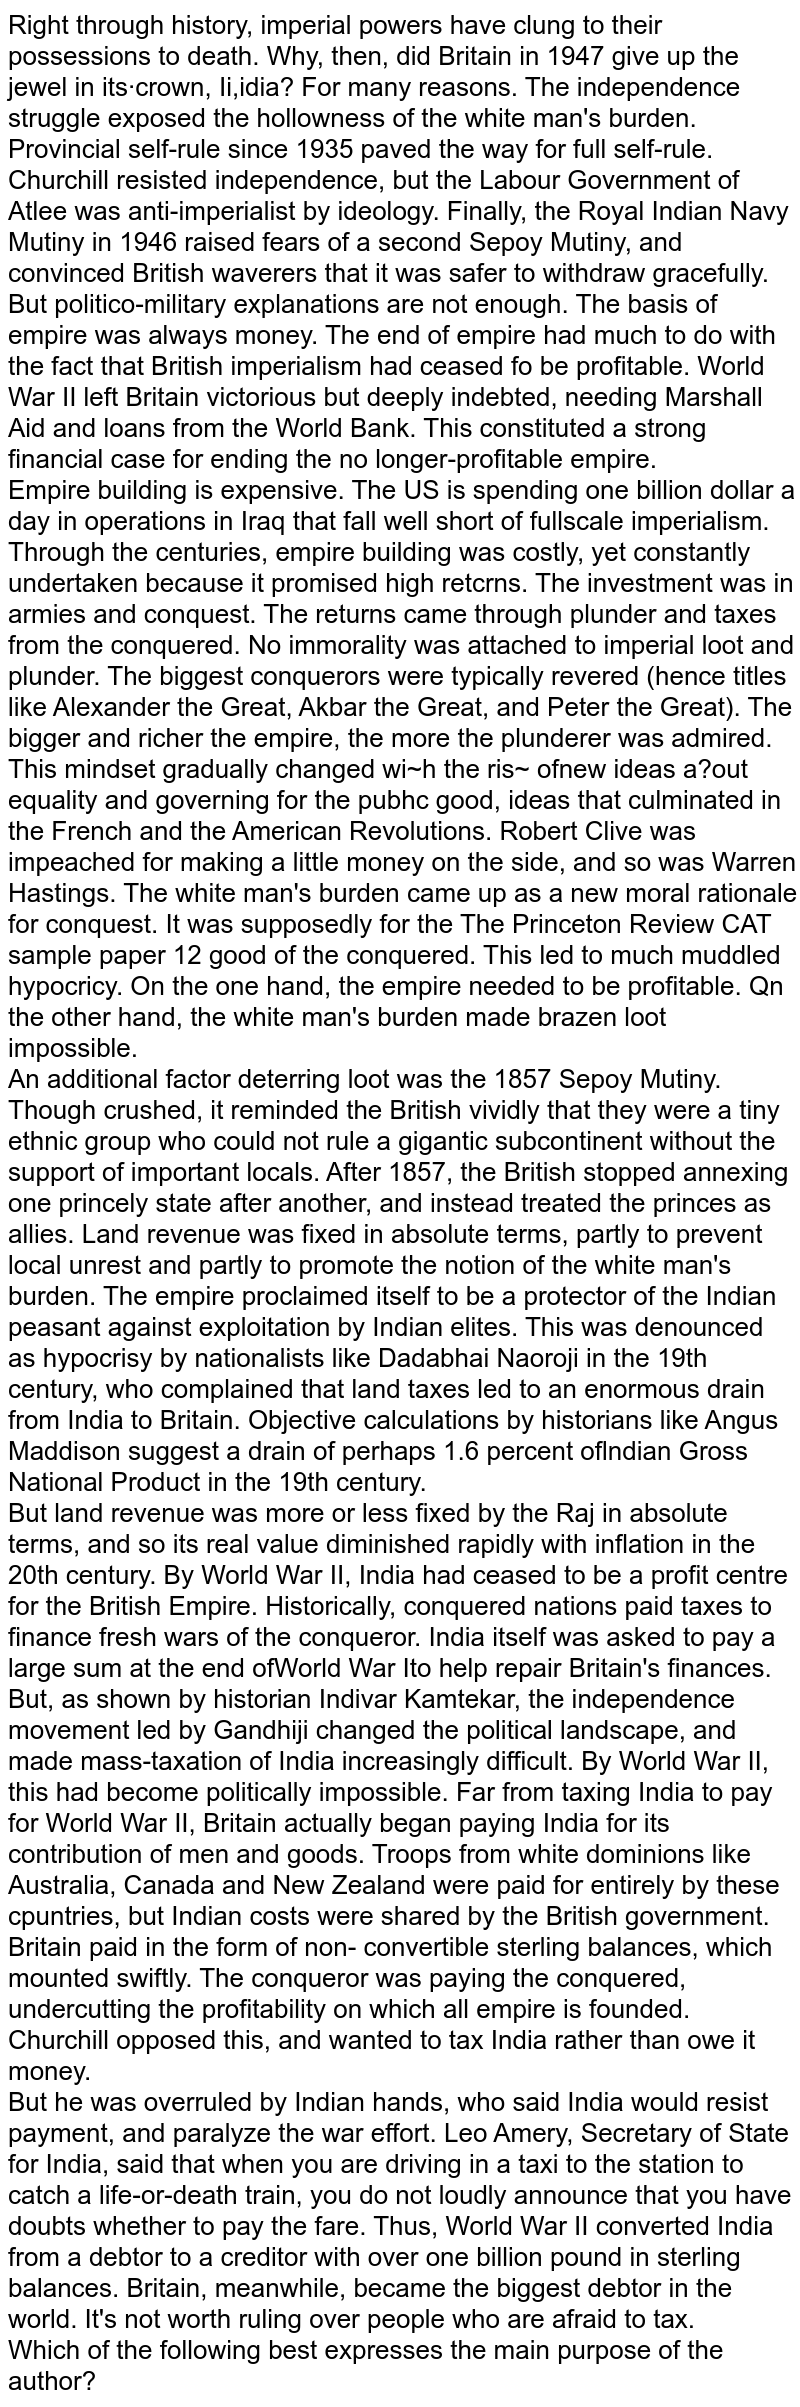 Right through history, imperial powers have clung to their possessions to death. Why, then, did Britain in 1947 give up the jewel in its